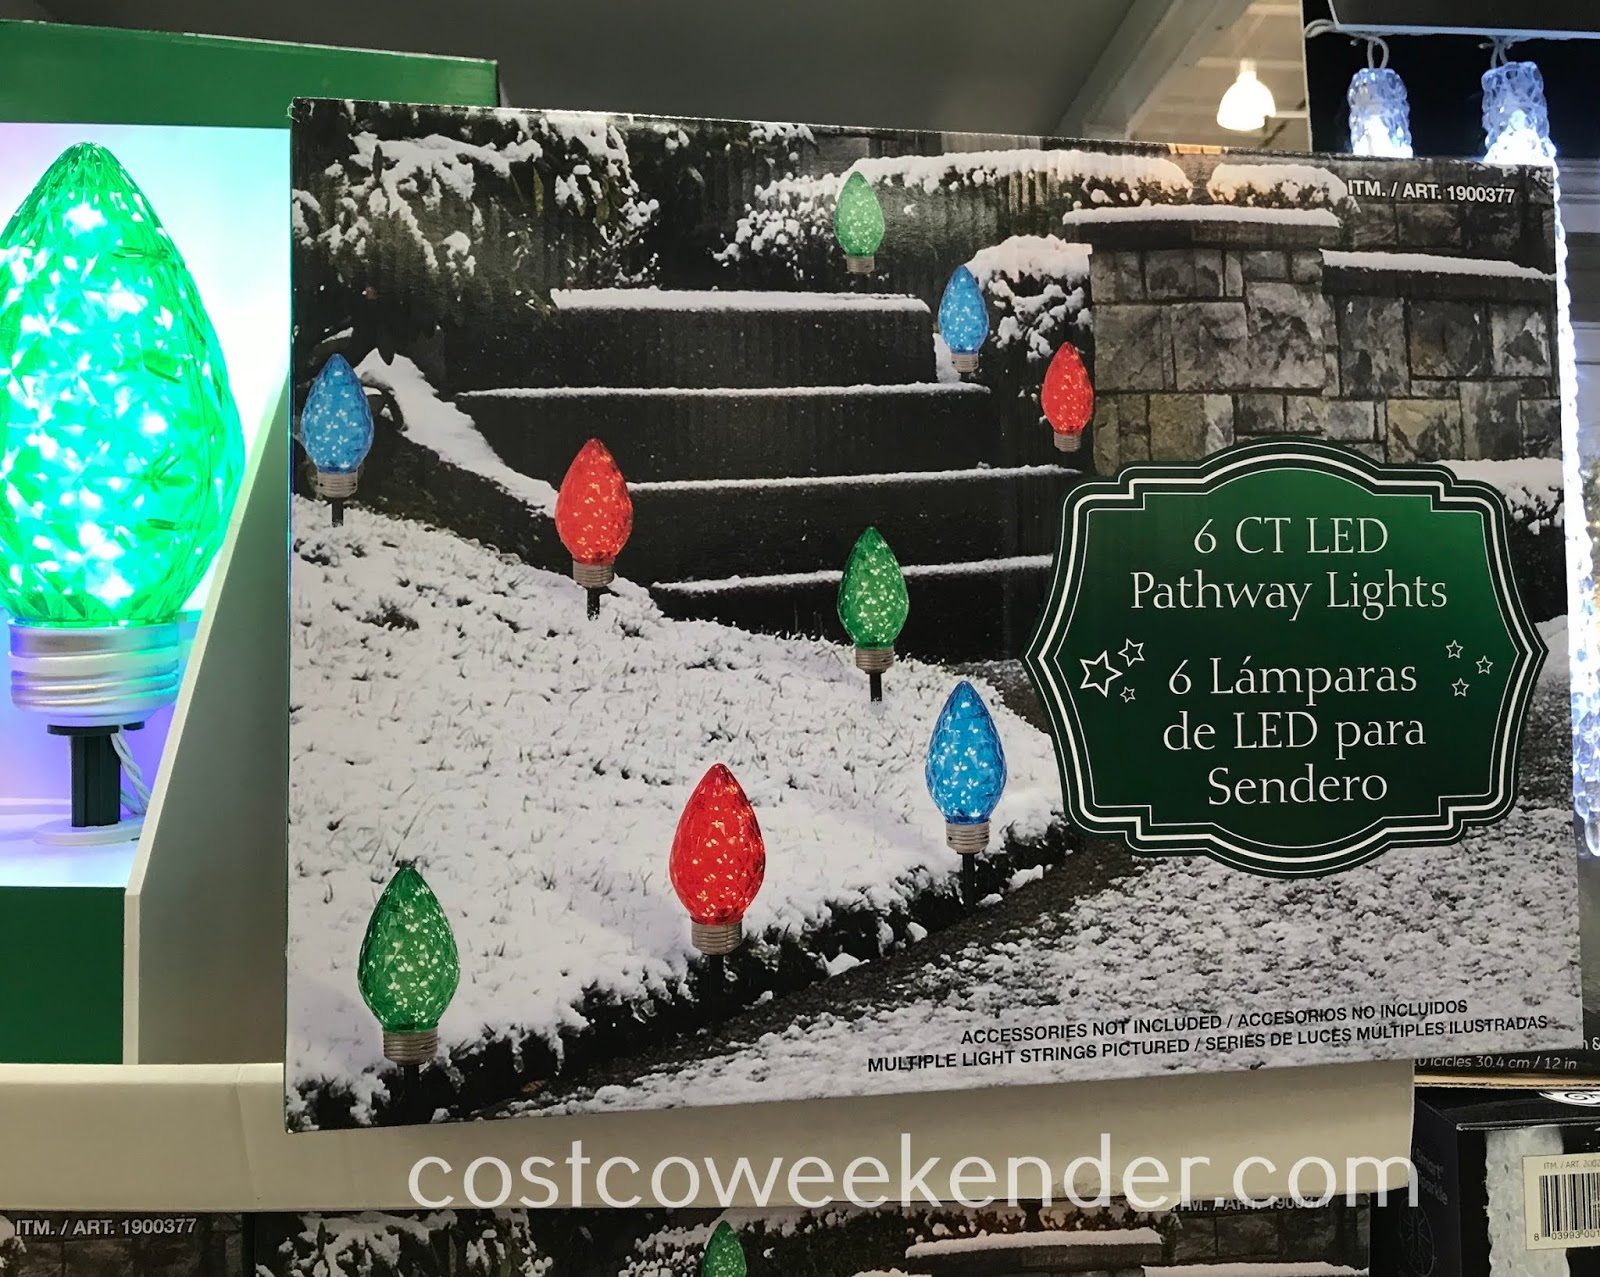 Costco 1900377 - LED Pathway Lights will help guests find their way to your front door